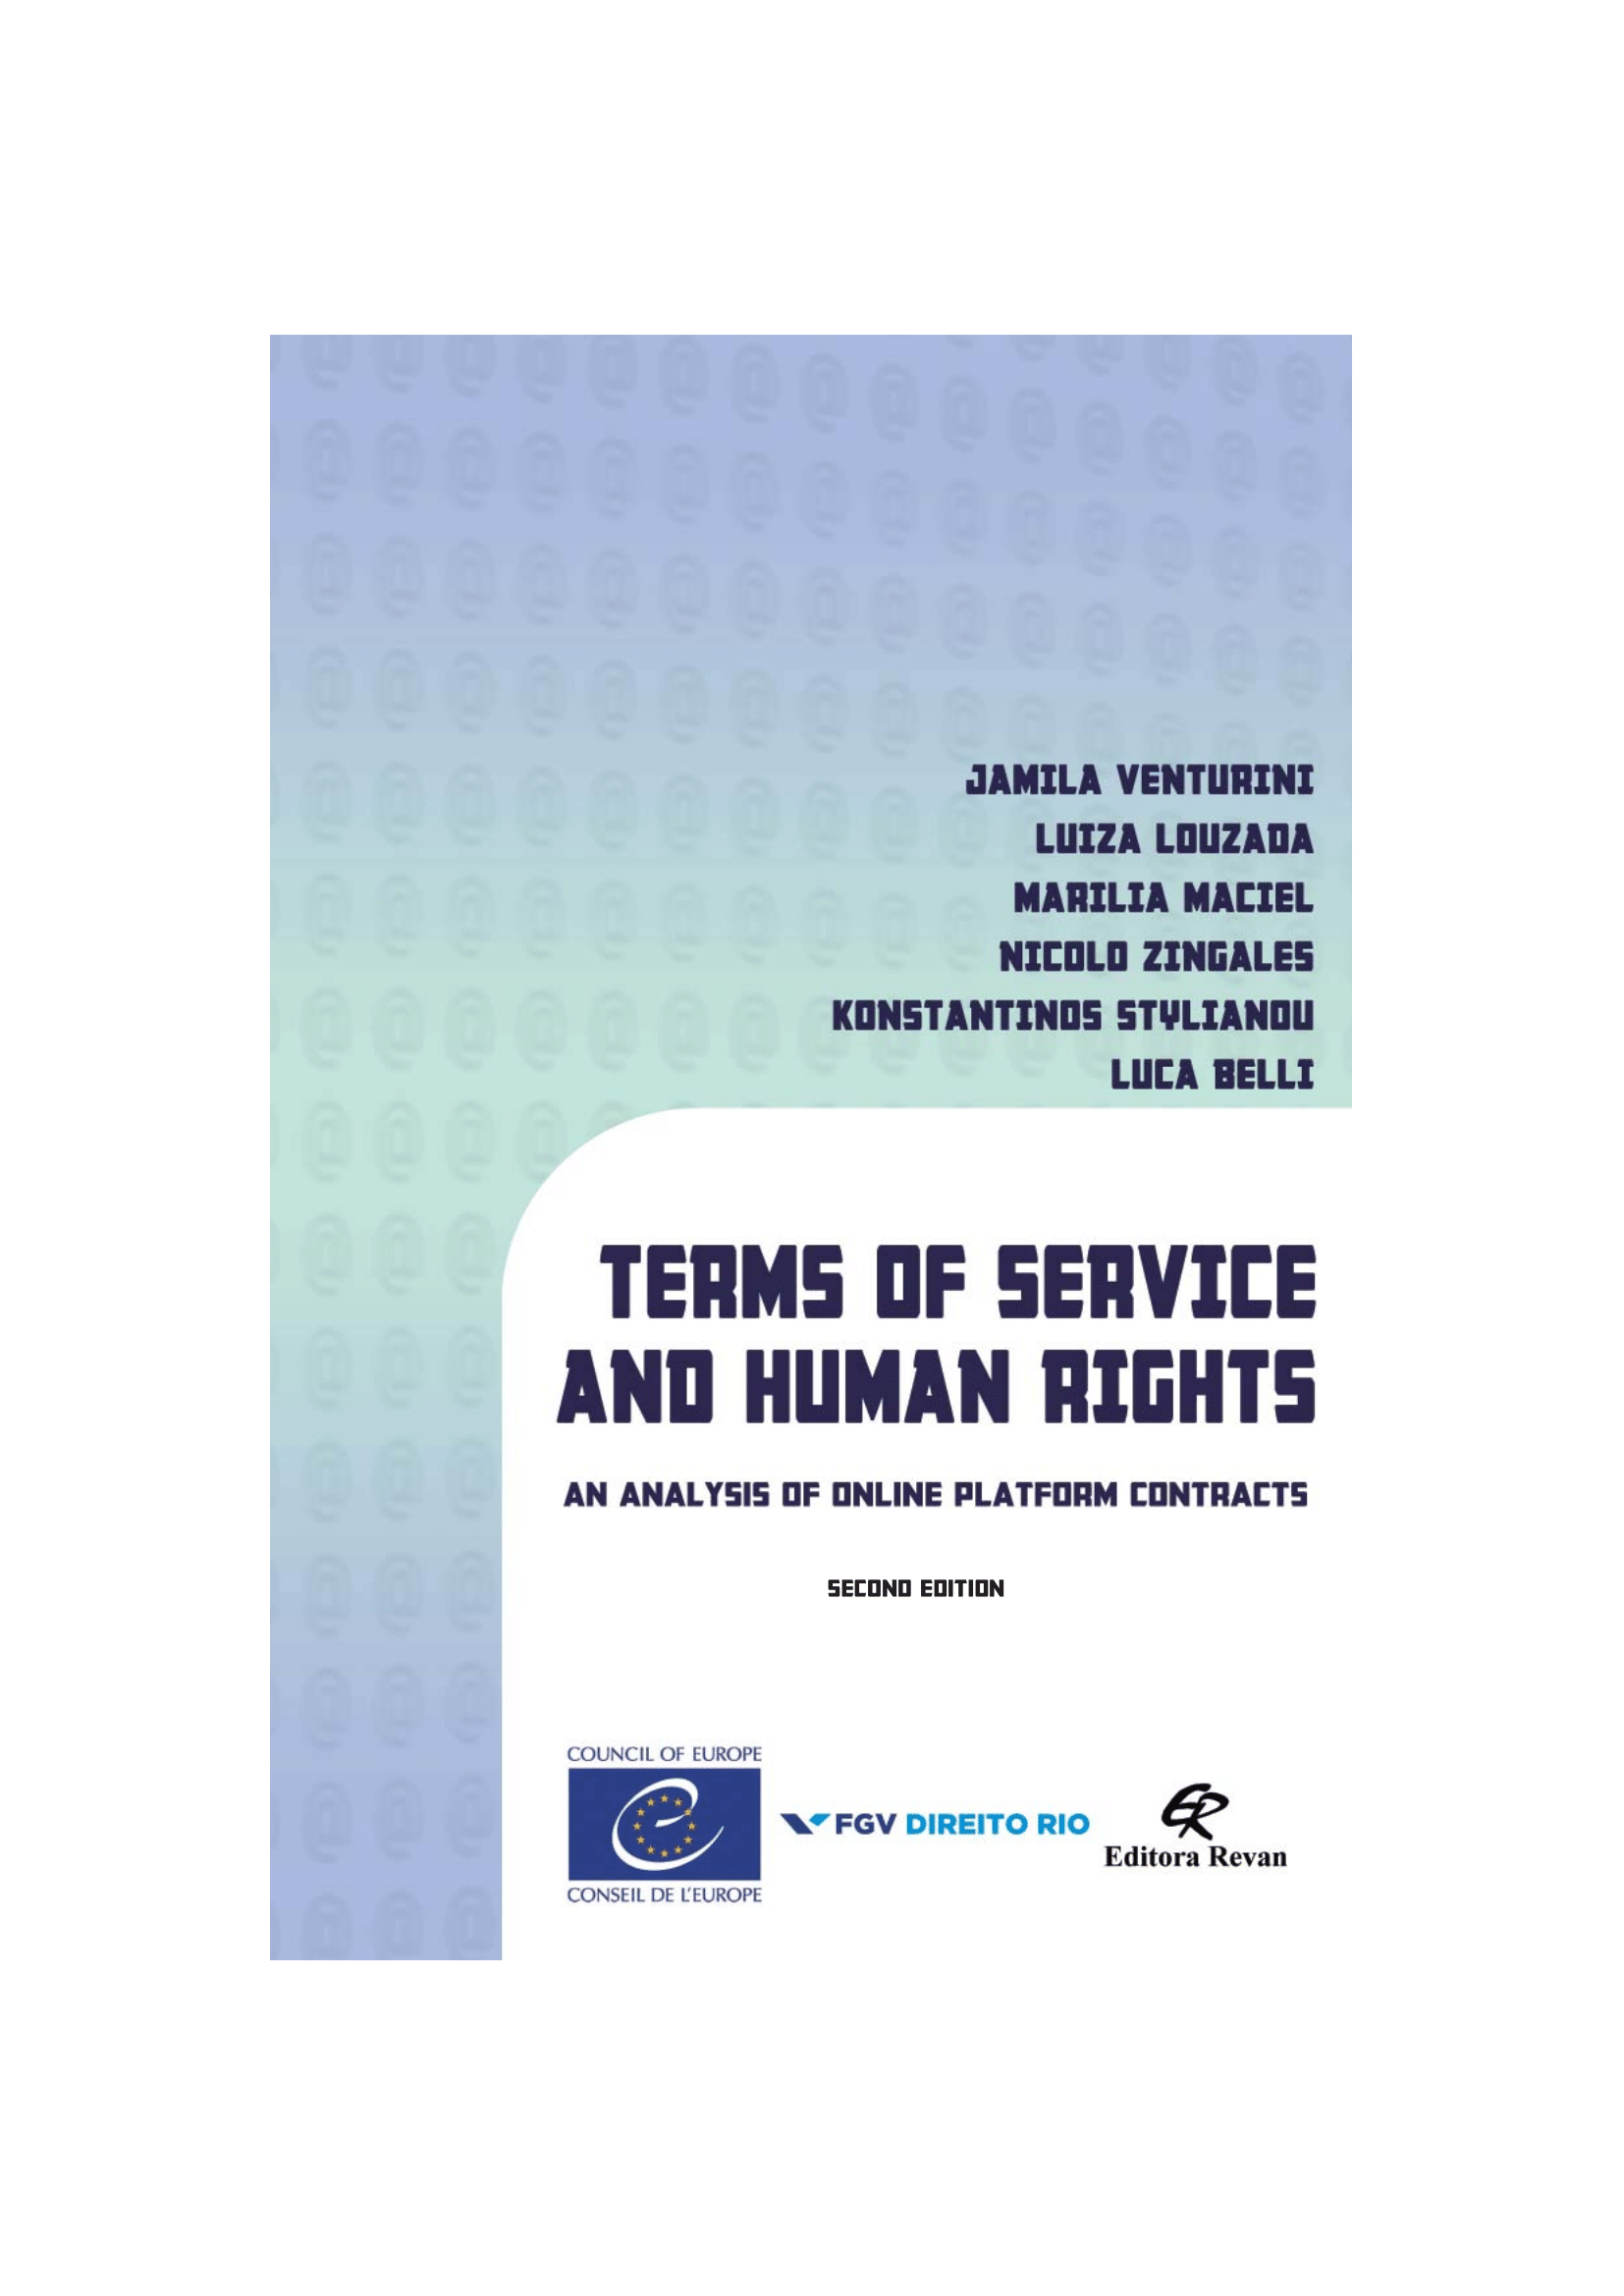 Book Terms of Service and Human Rights: an Analysis of Online Platform Contracts